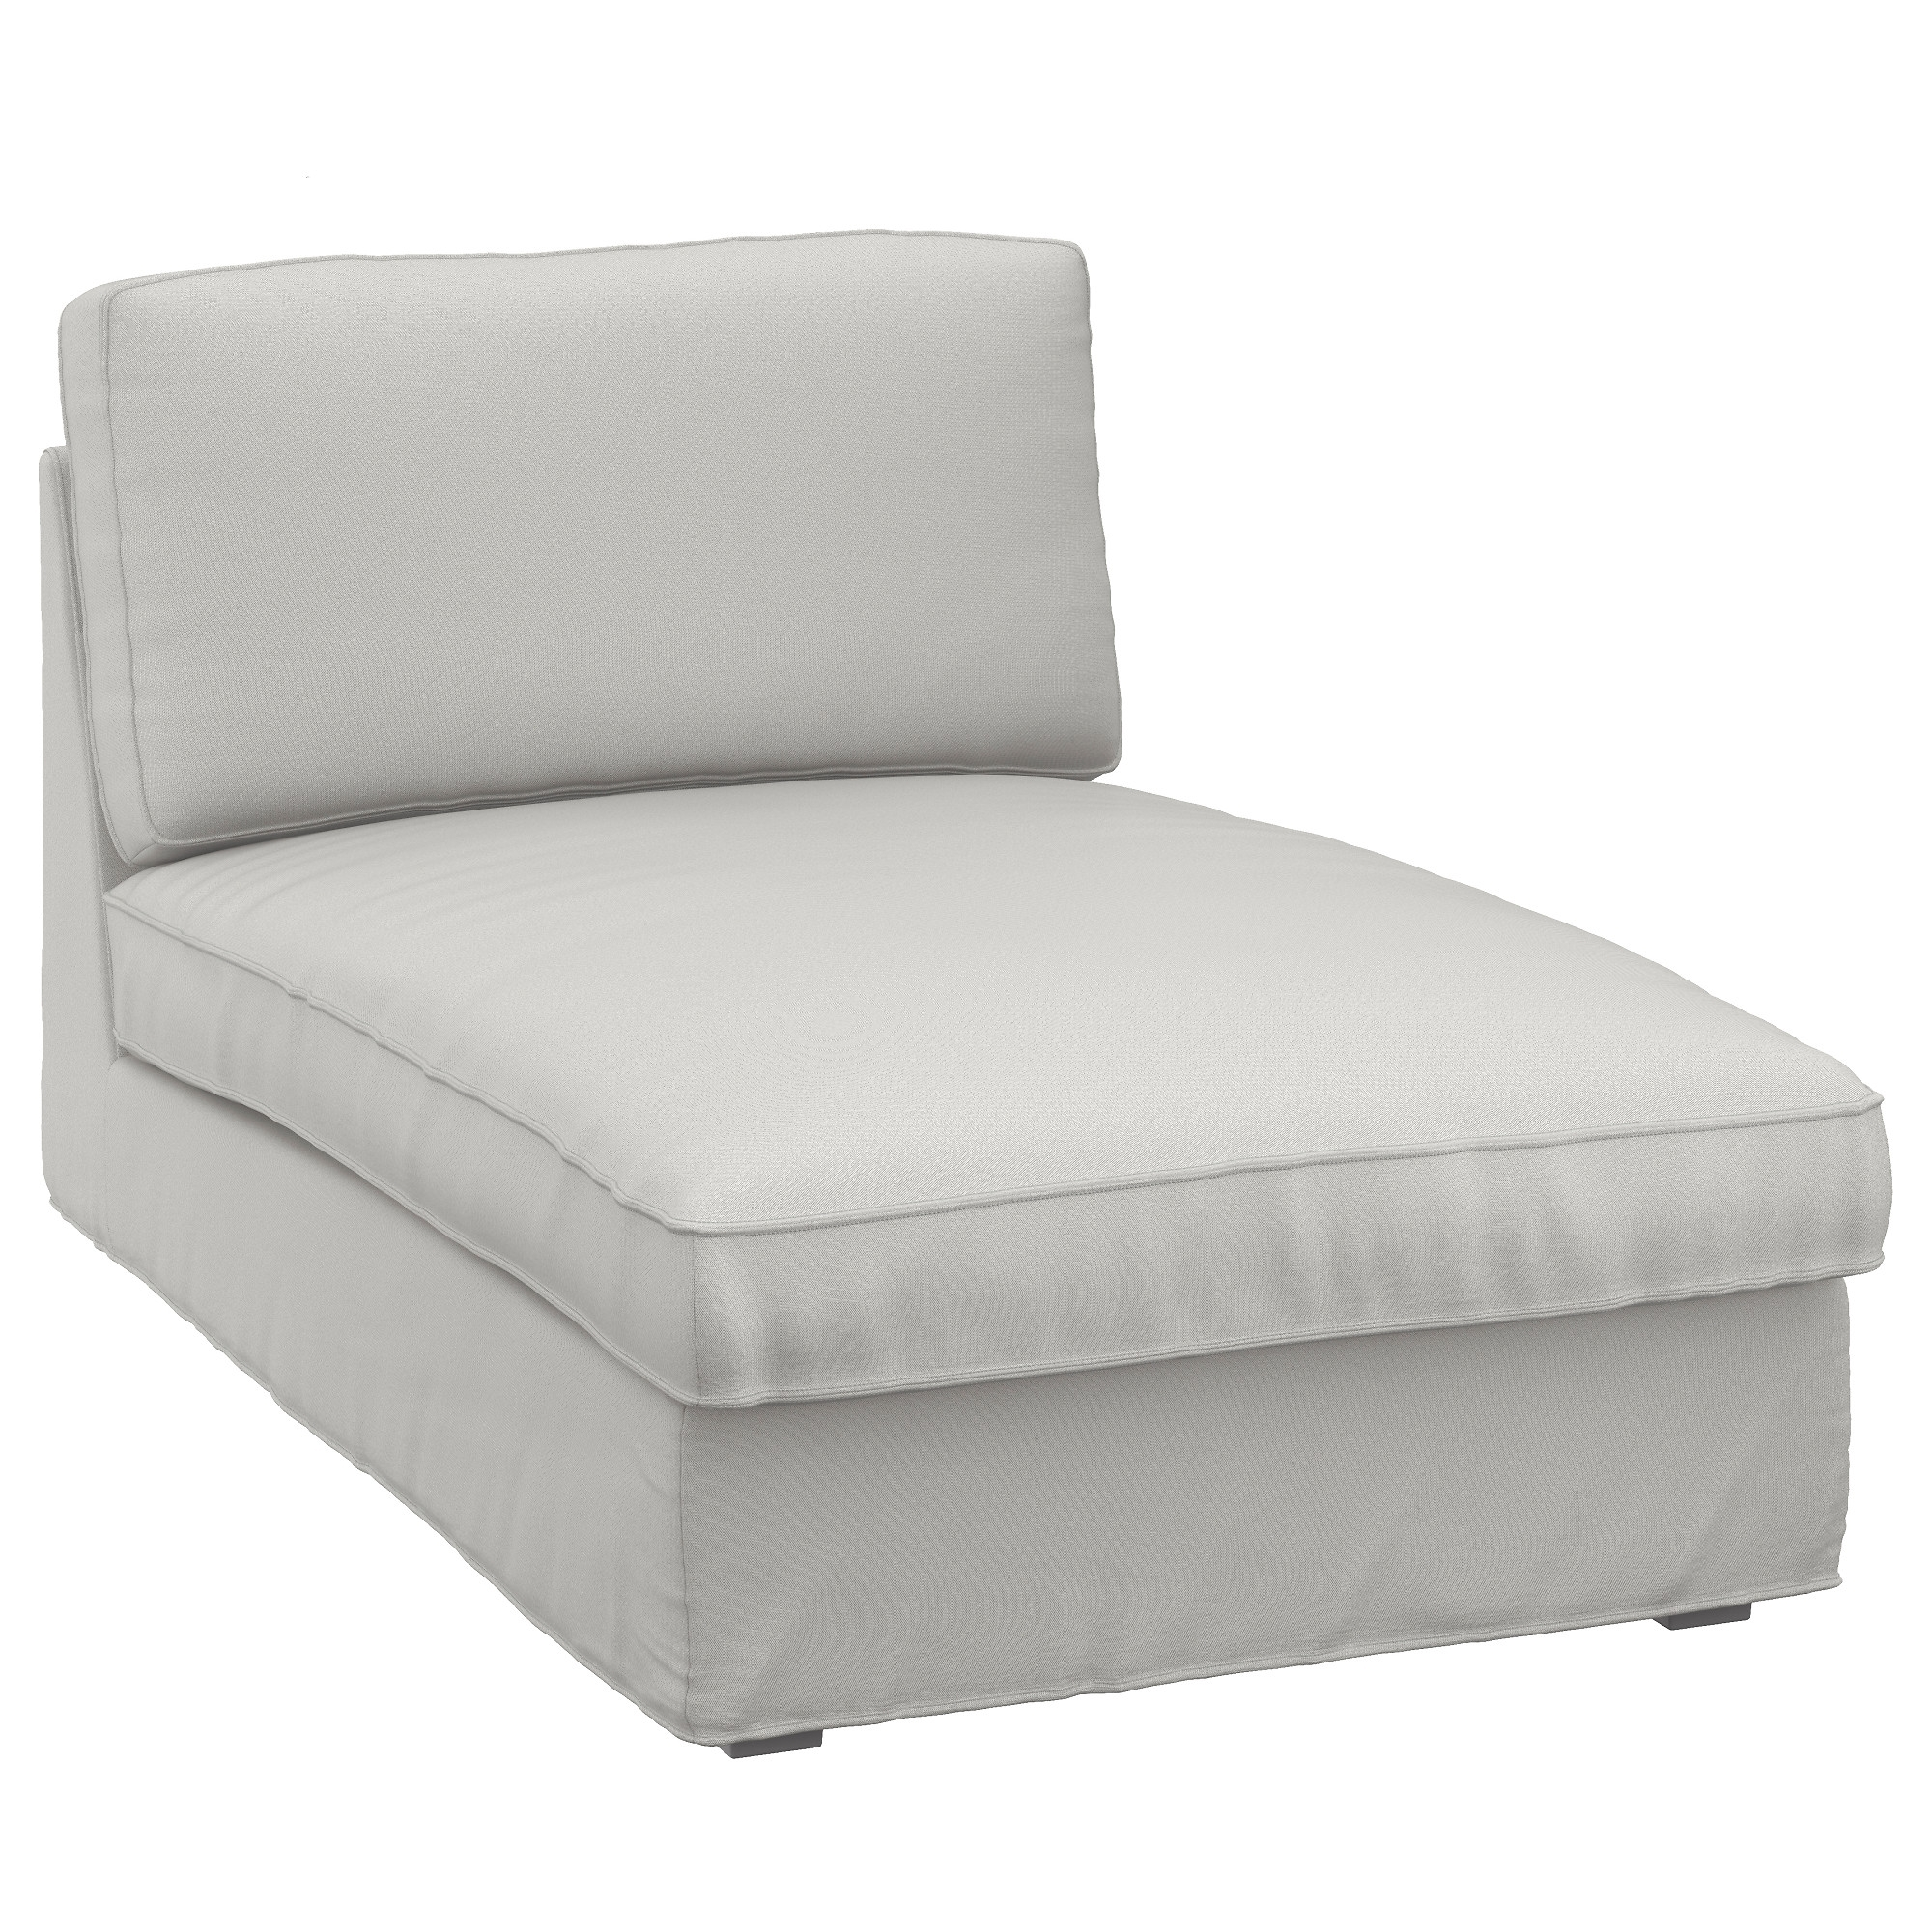 Famous Chaise Lounges (View 4 of 15)